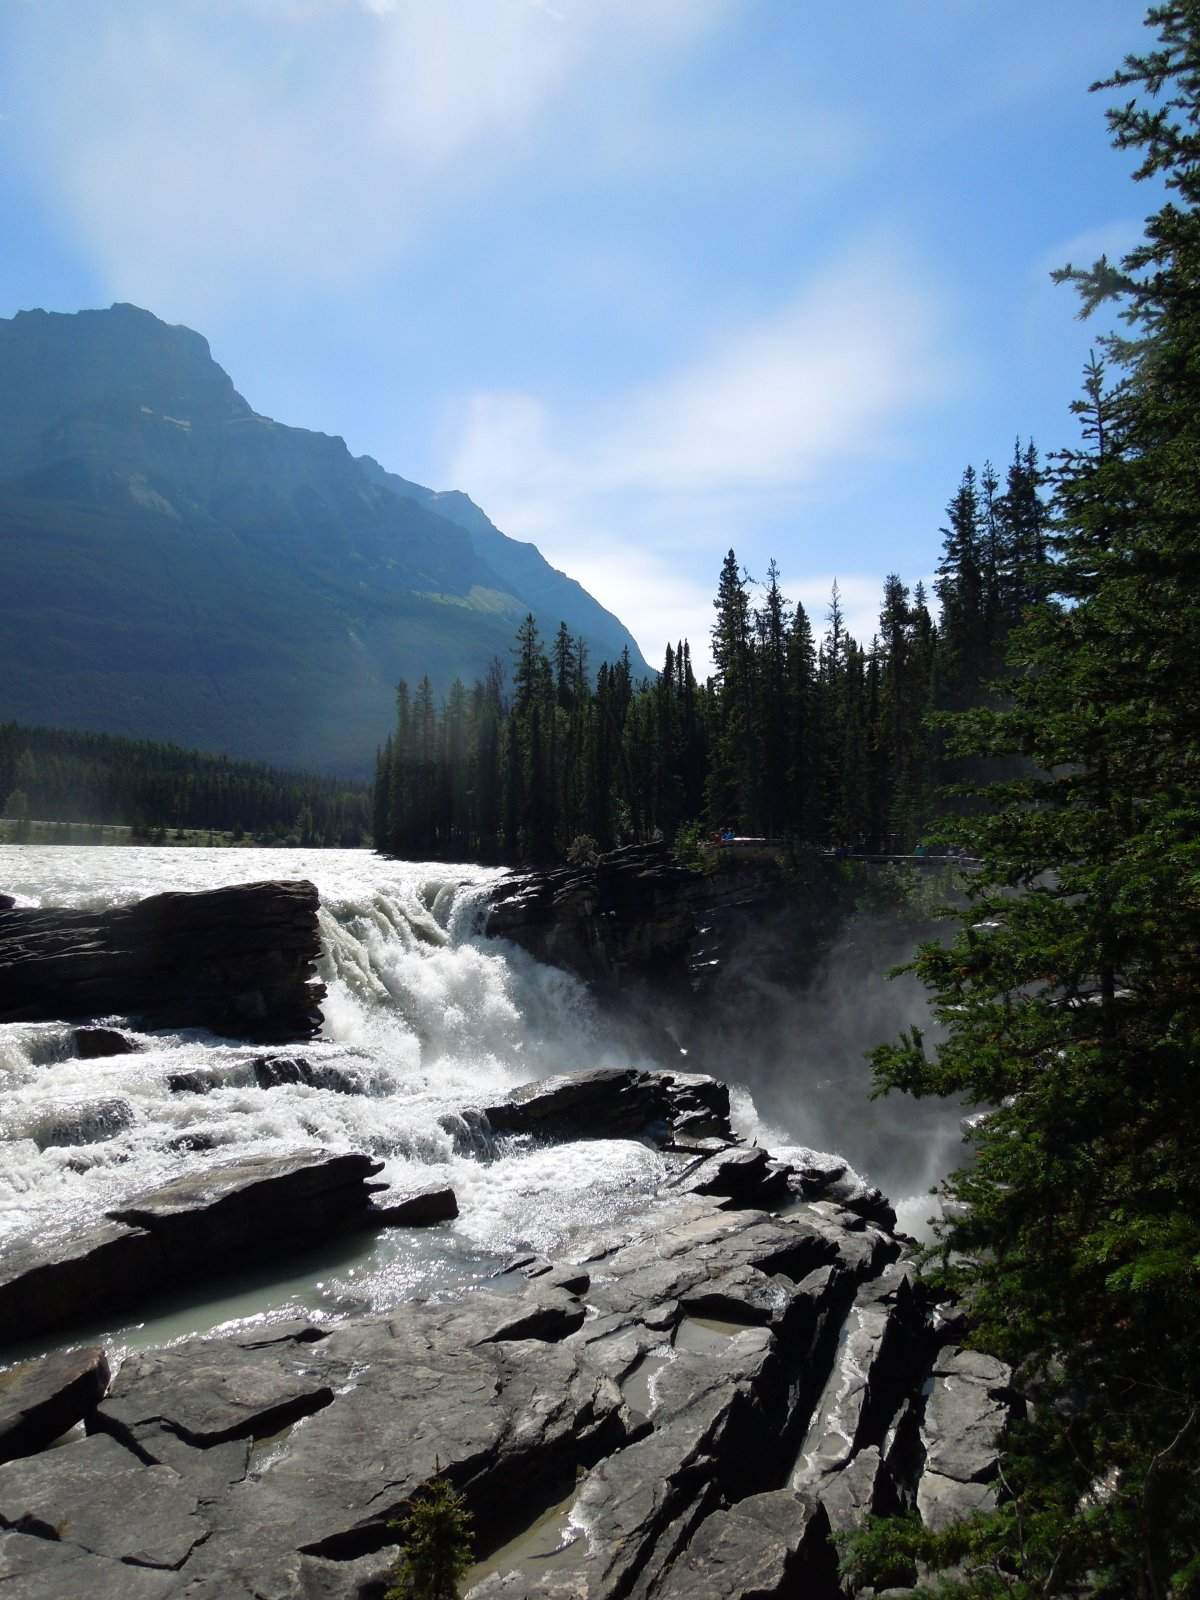 Click image for larger version  Name:Dawson Creek to Icefield Parkway to Cochrane 087.jpg Views:53 Size:346.4 KB ID:222434